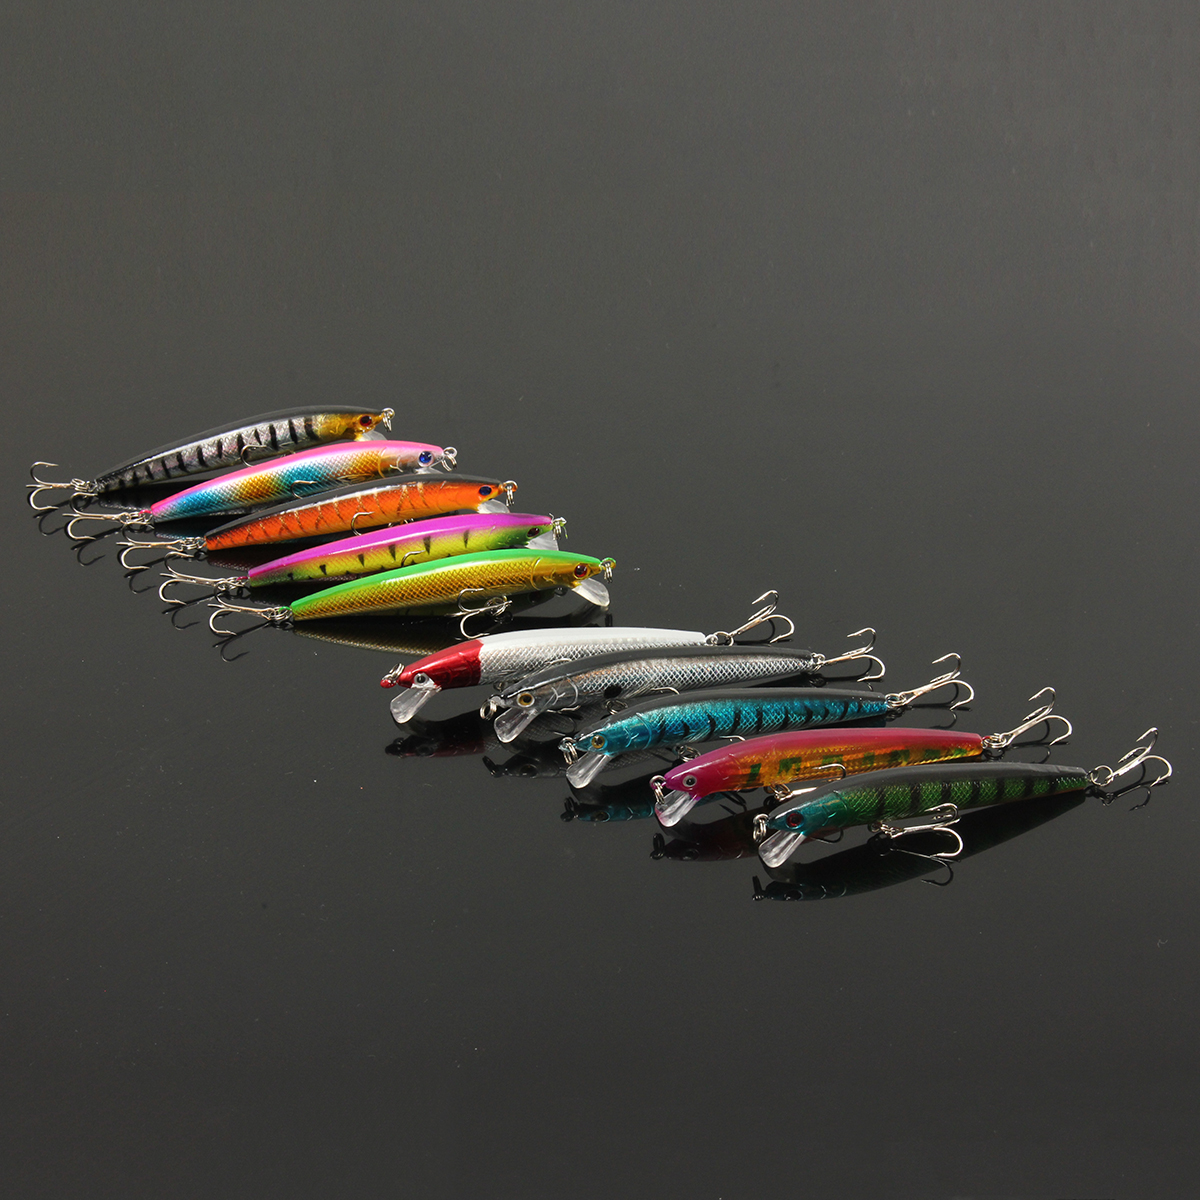 ZANLURE 1pc 10CM 8.5G Minnow Fishing Lure Crankbaits Hook Bass Crankbaits Tackle